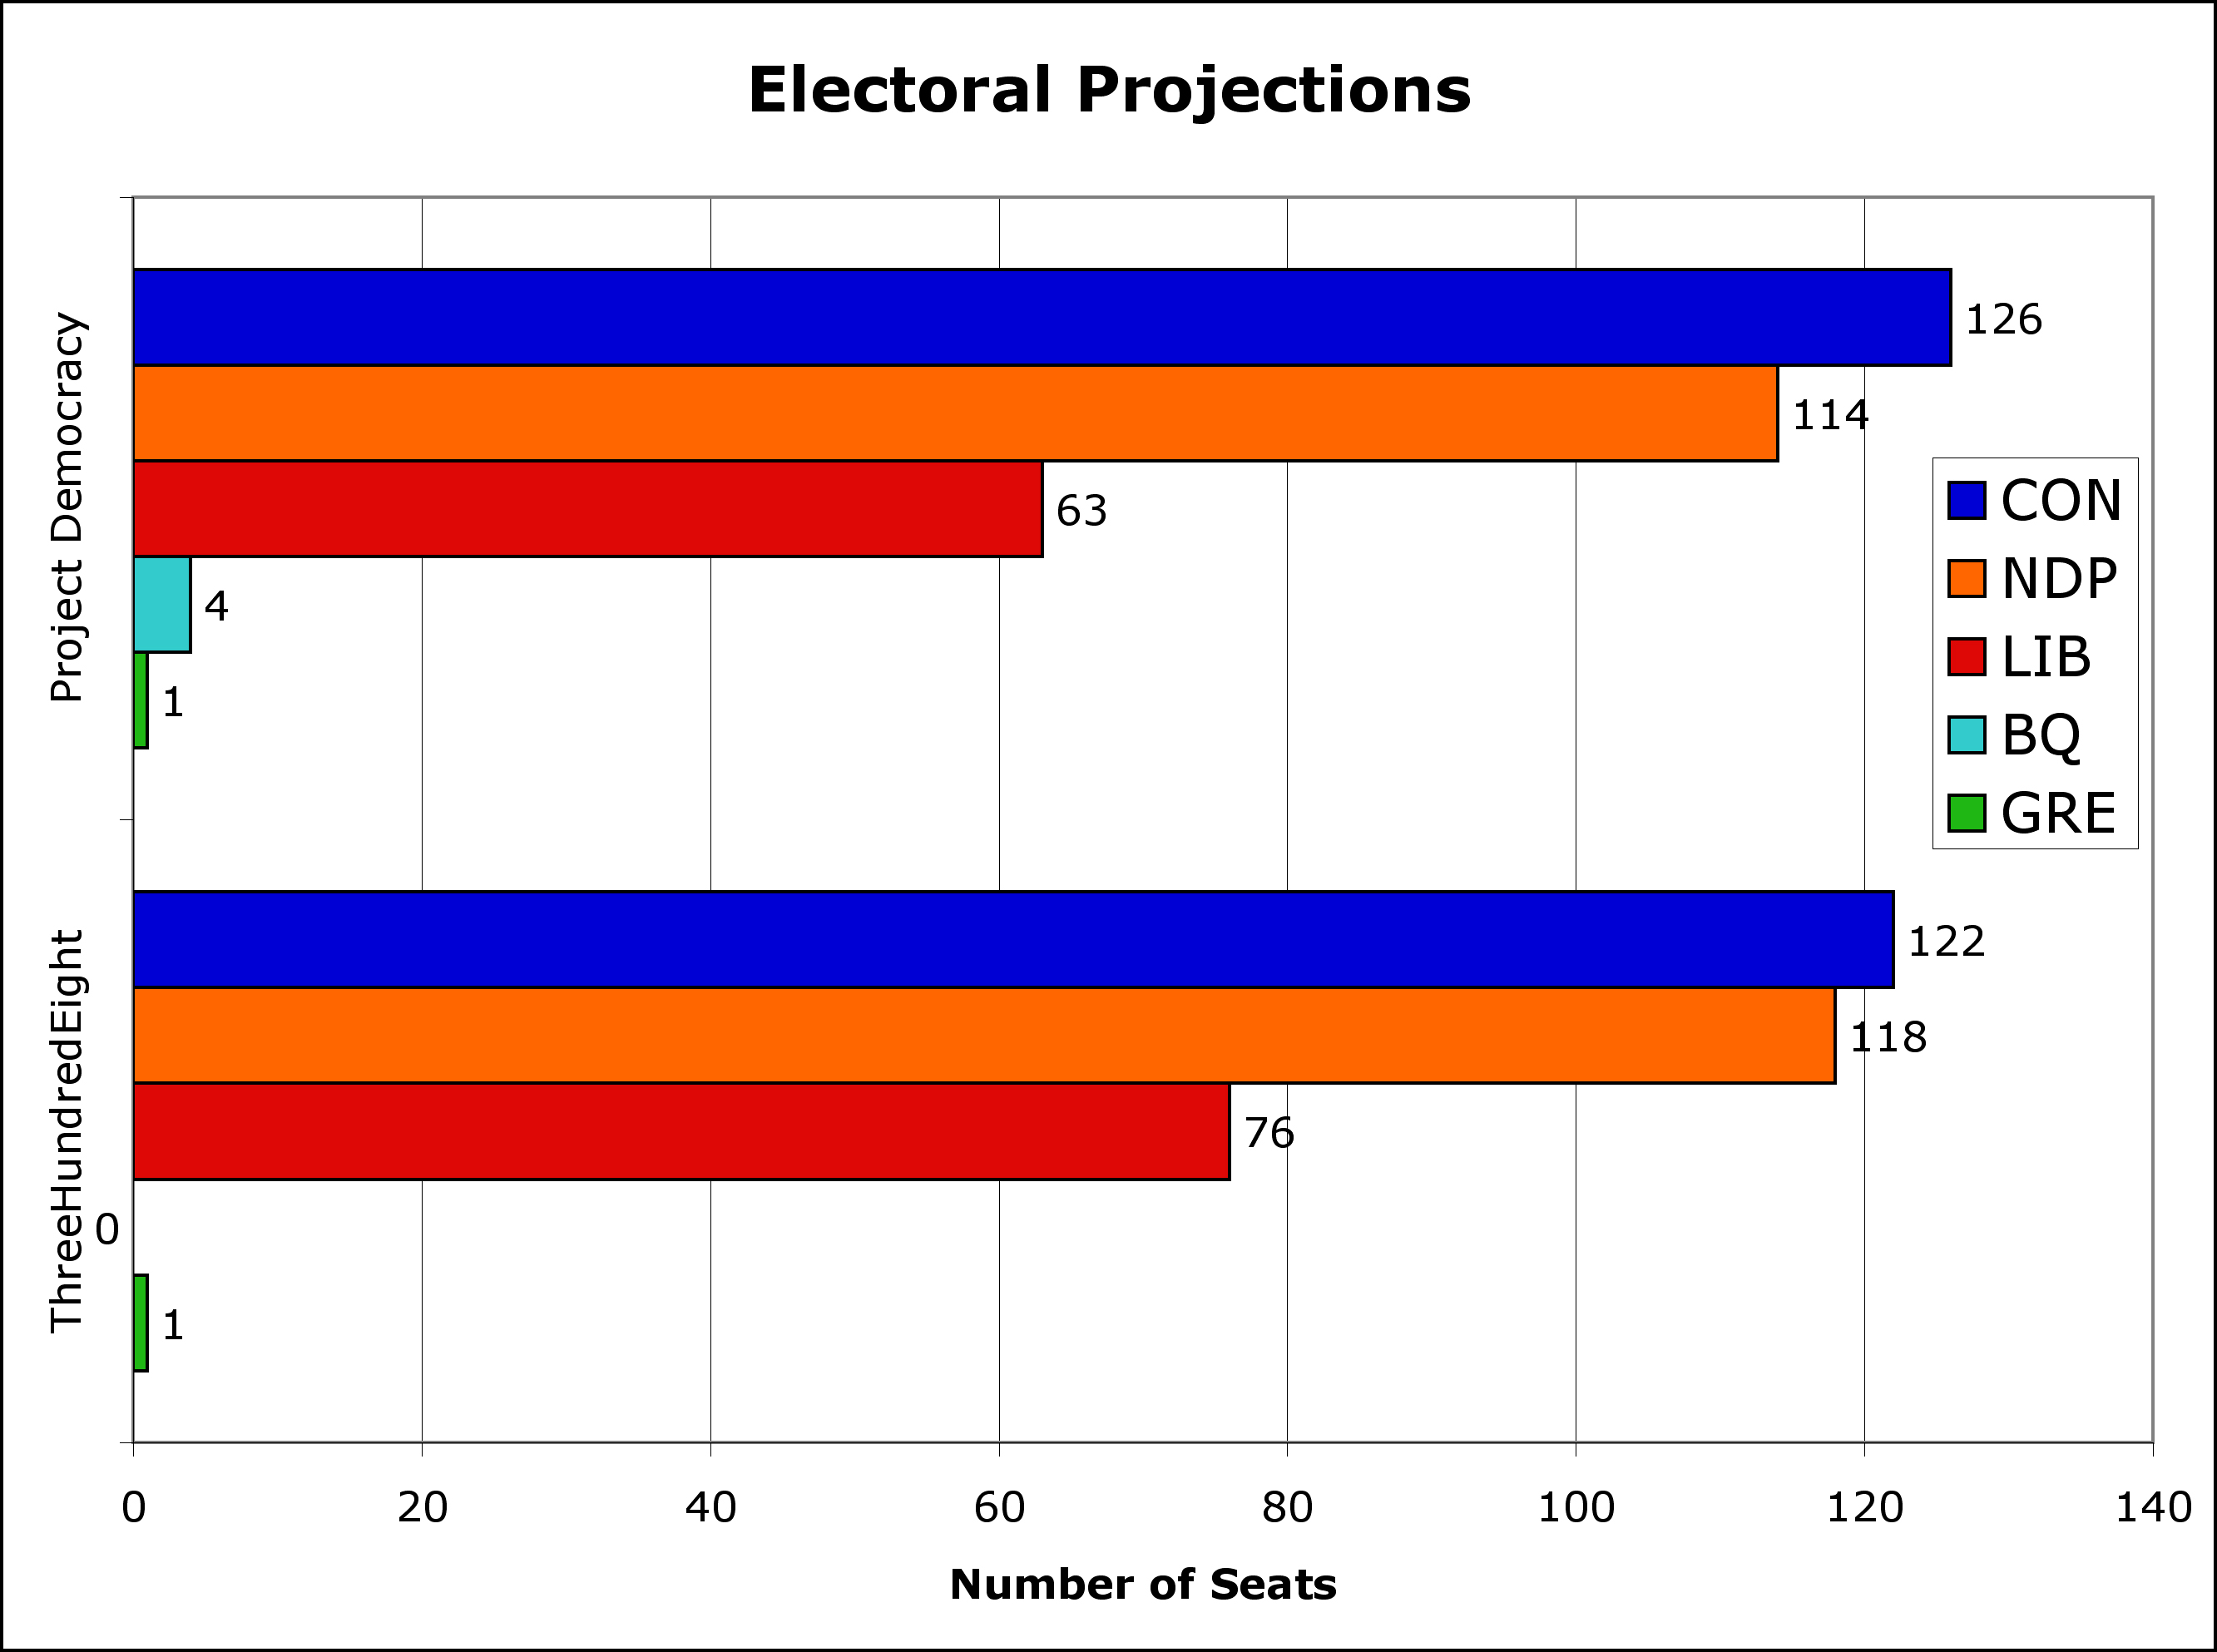 Electoral Projections